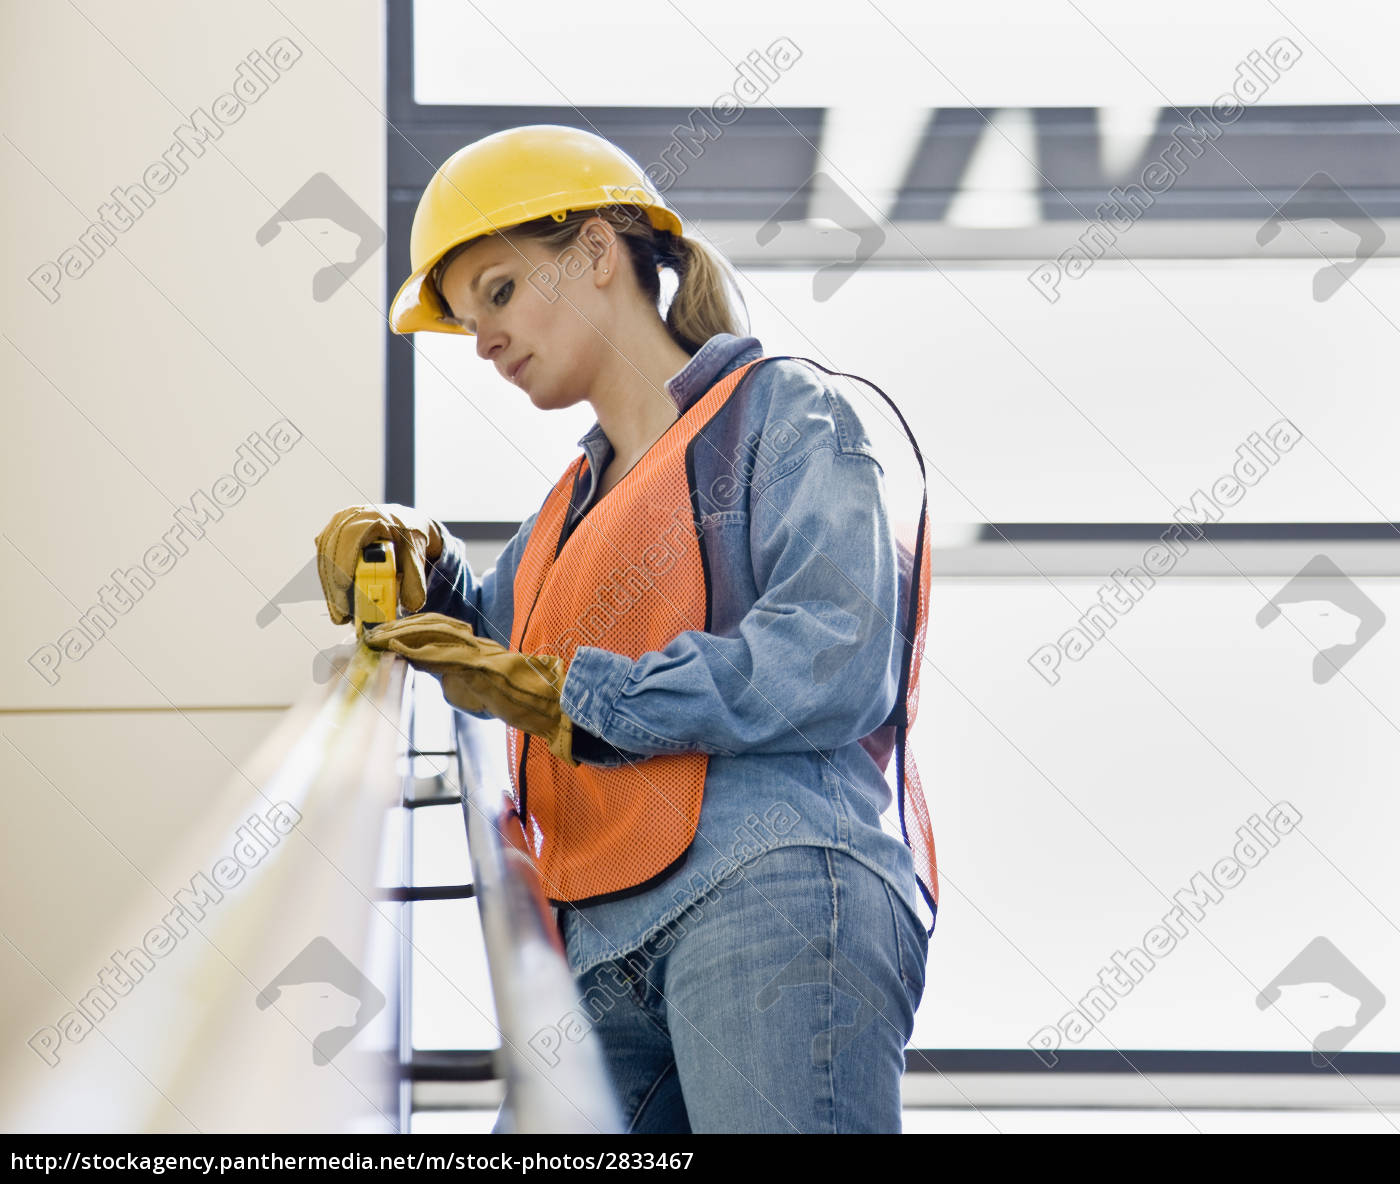 female, construction, worker - 2833467